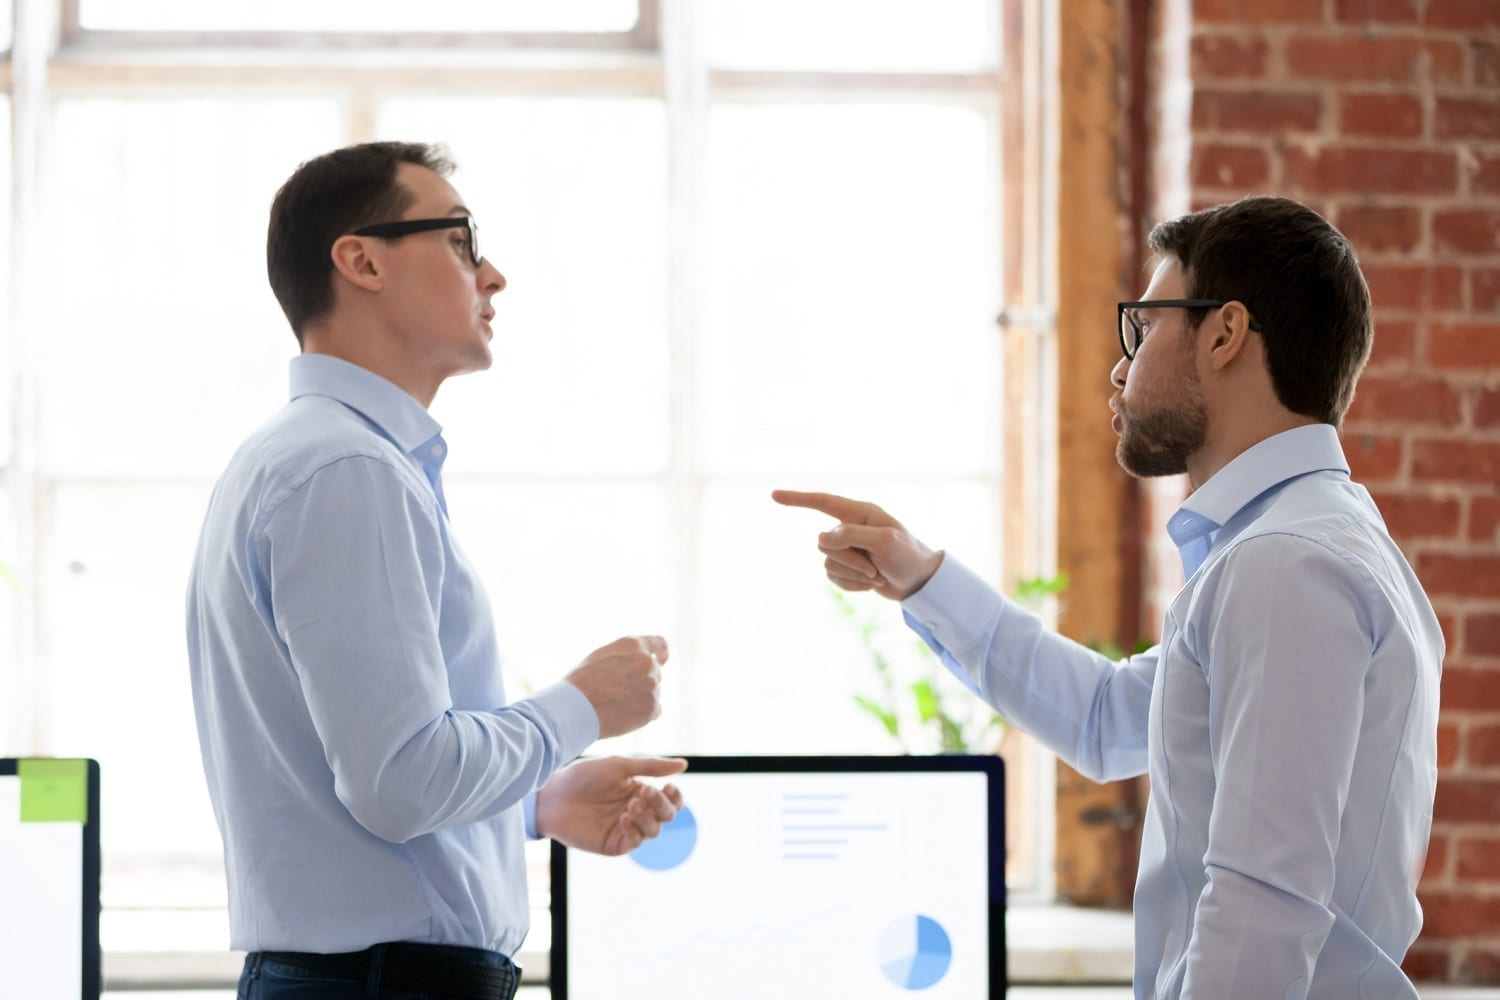 Man pointing his finger at the other guy: ID 130966660 © Fizkes | Dreamstime.com